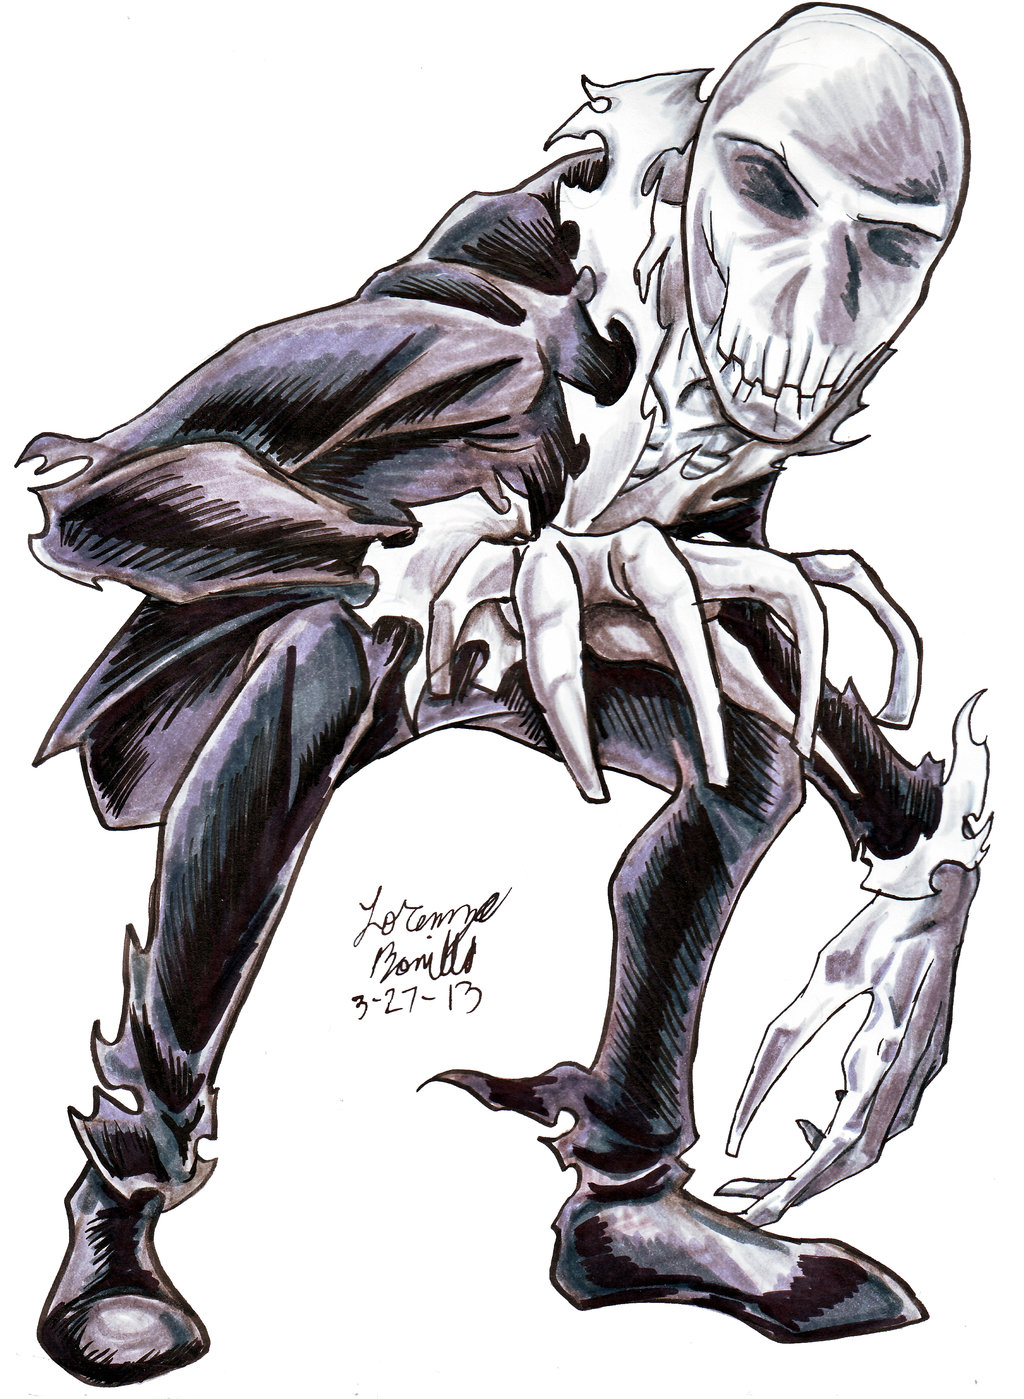 Drawn slenderman awesome Drawing Drawing on Slender Second